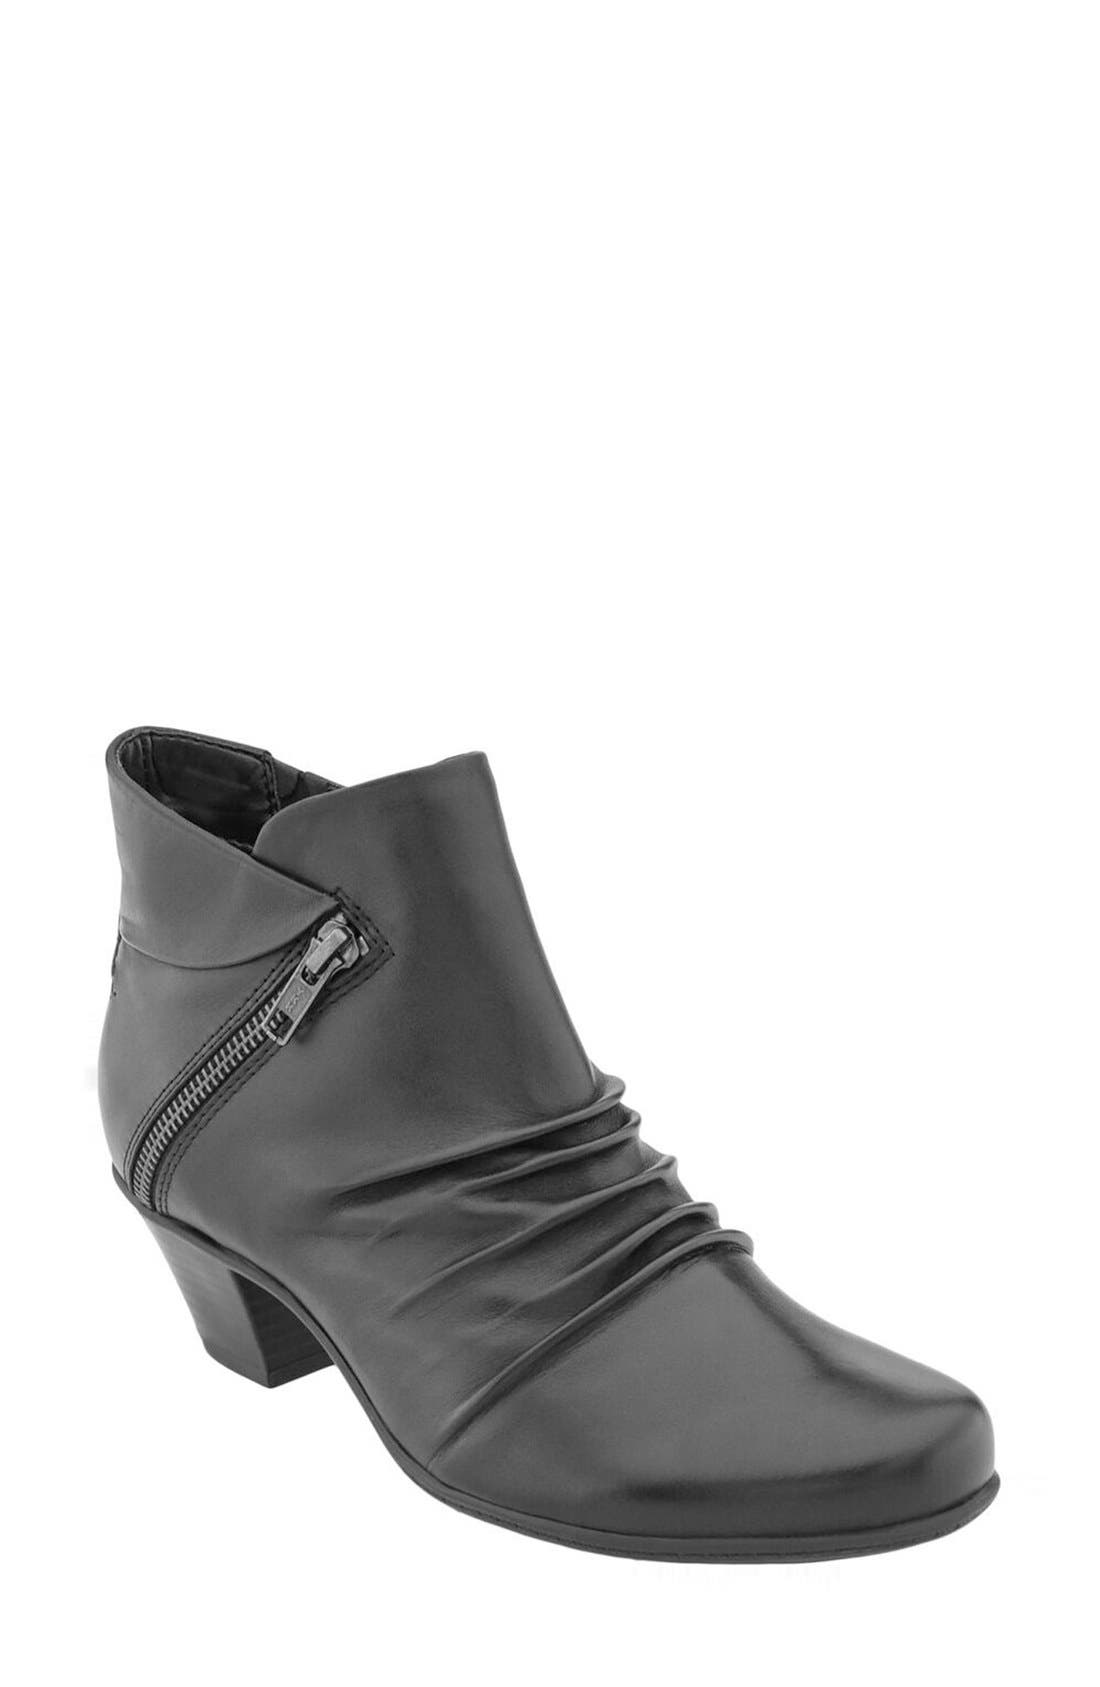 Alternate Image 1 Selected - Earth® 'Pegasus' Bootie (Women)